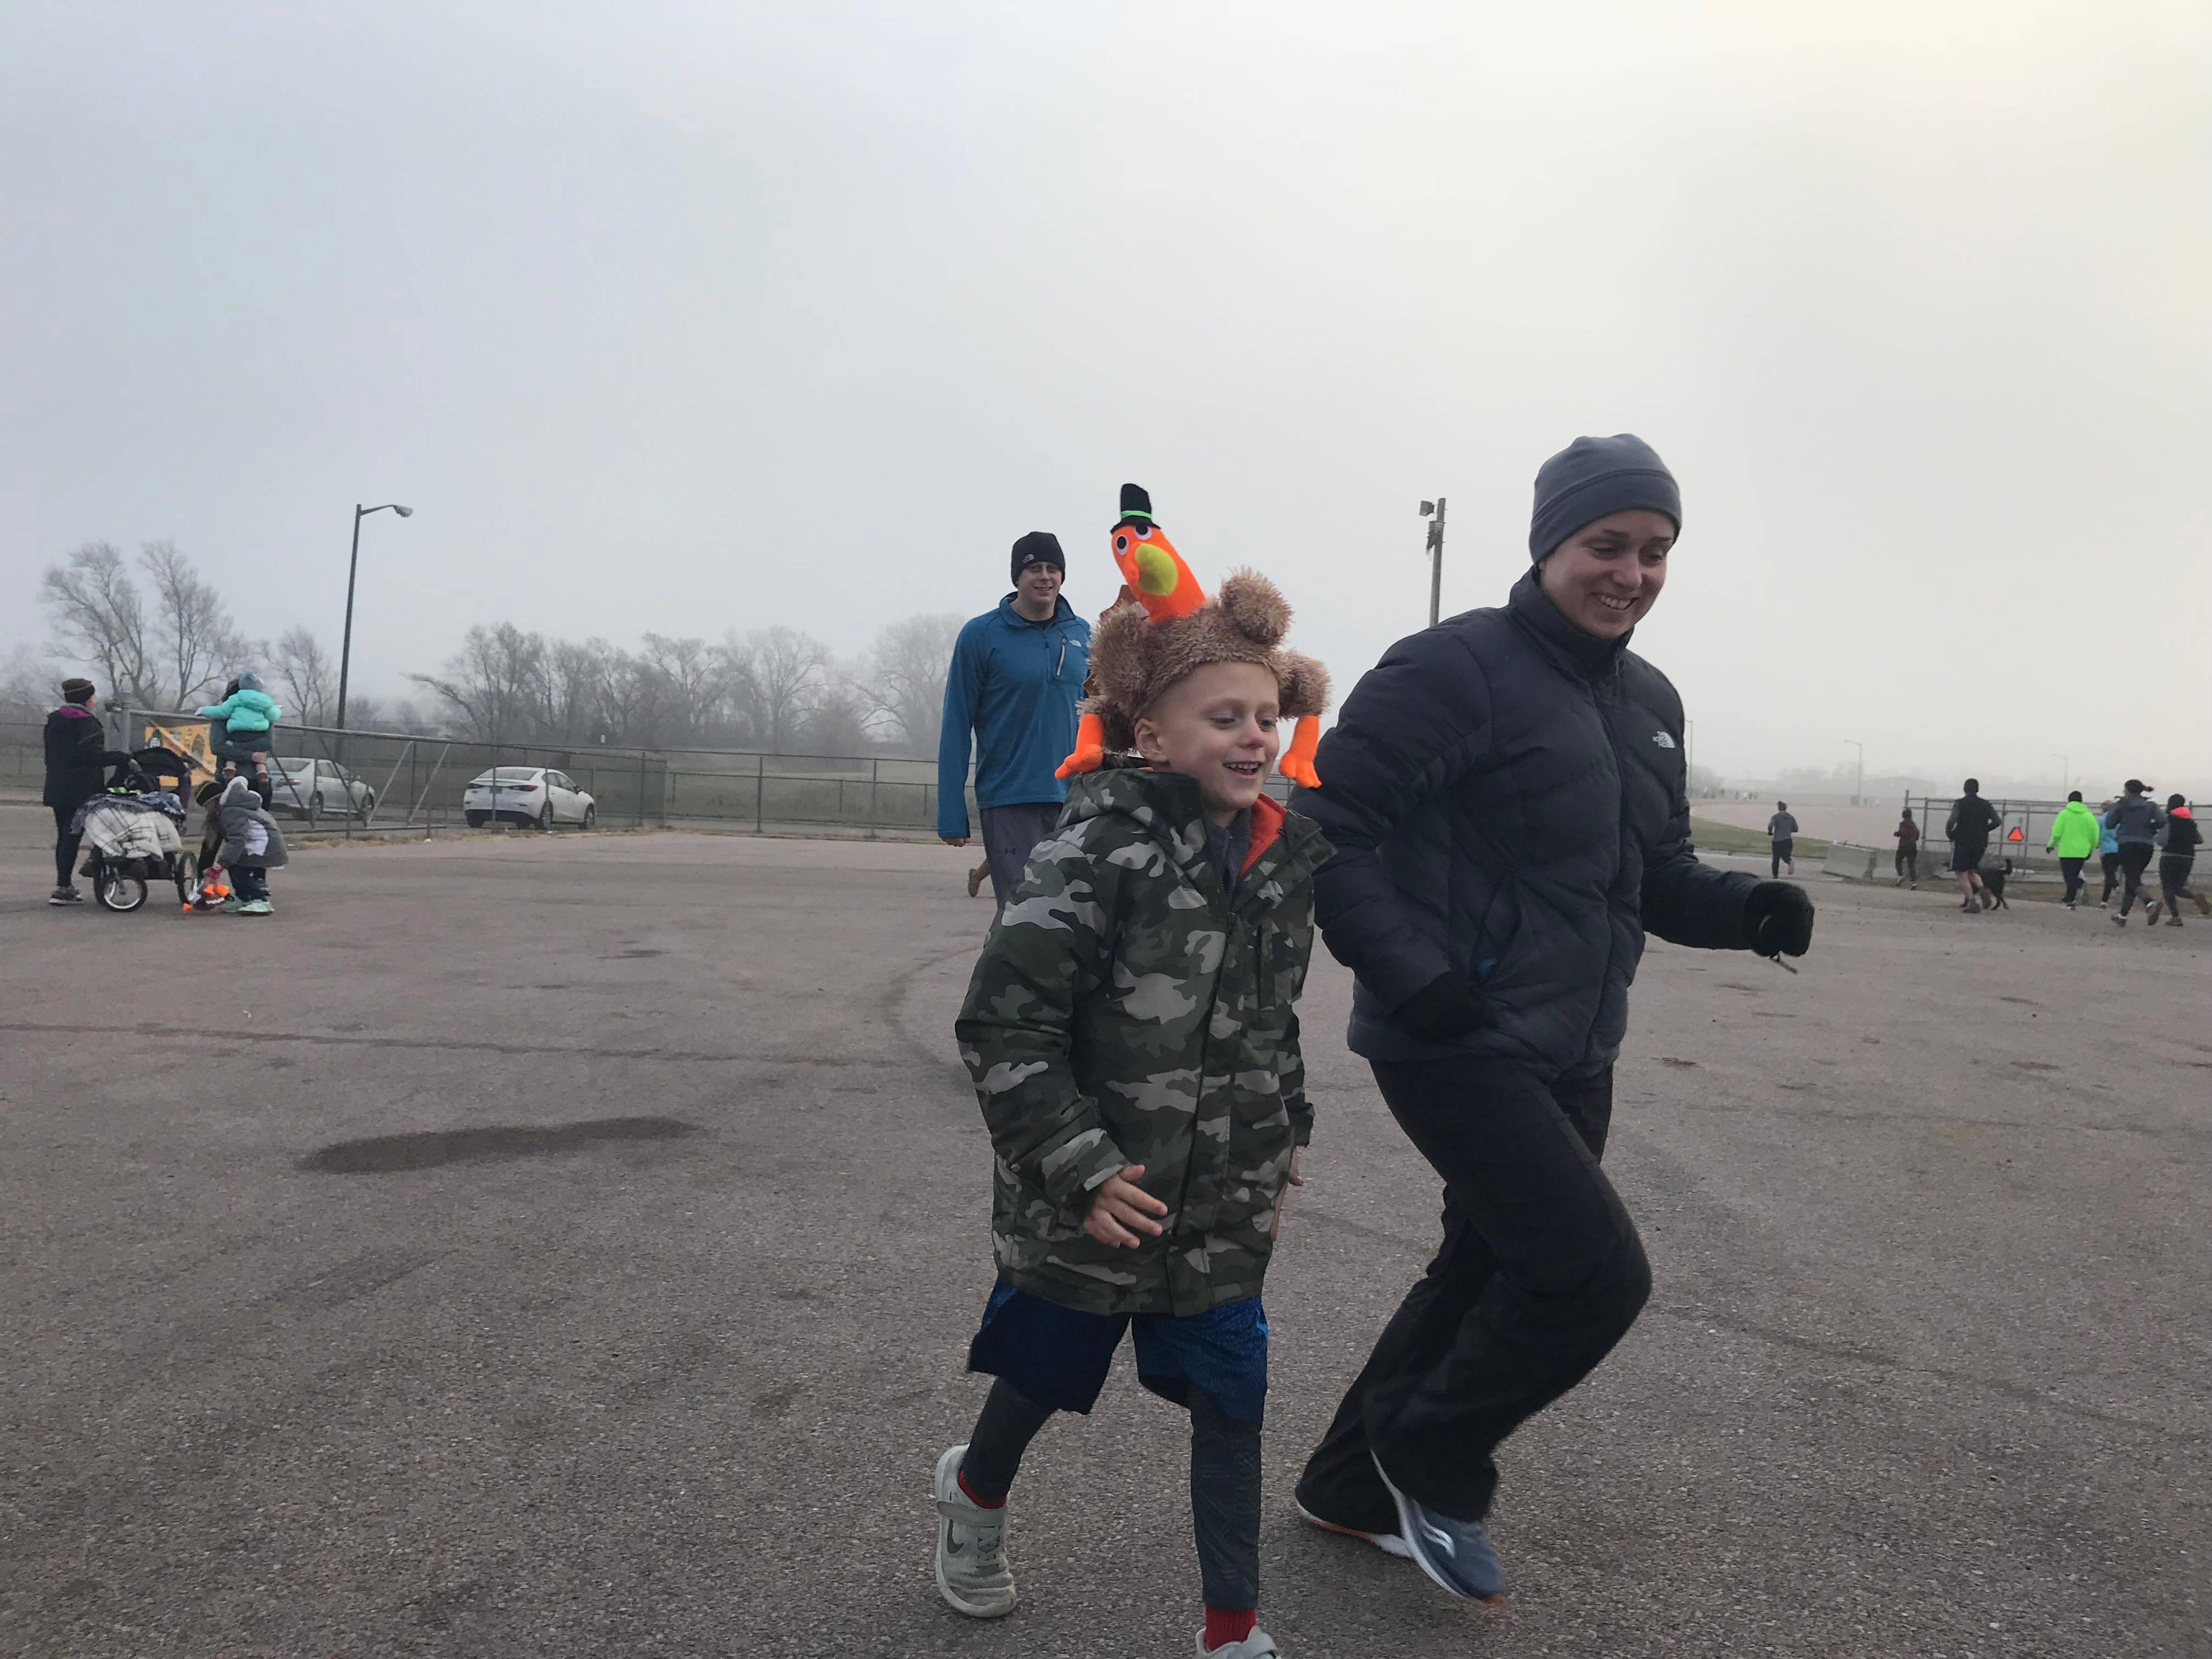 Brady Zirbel, 7, runs with his mother Leigh at the starting area of the 2018 Run for Food. The event benefits the Banquet, which serves hot meals to Sioux Falls' hungry.